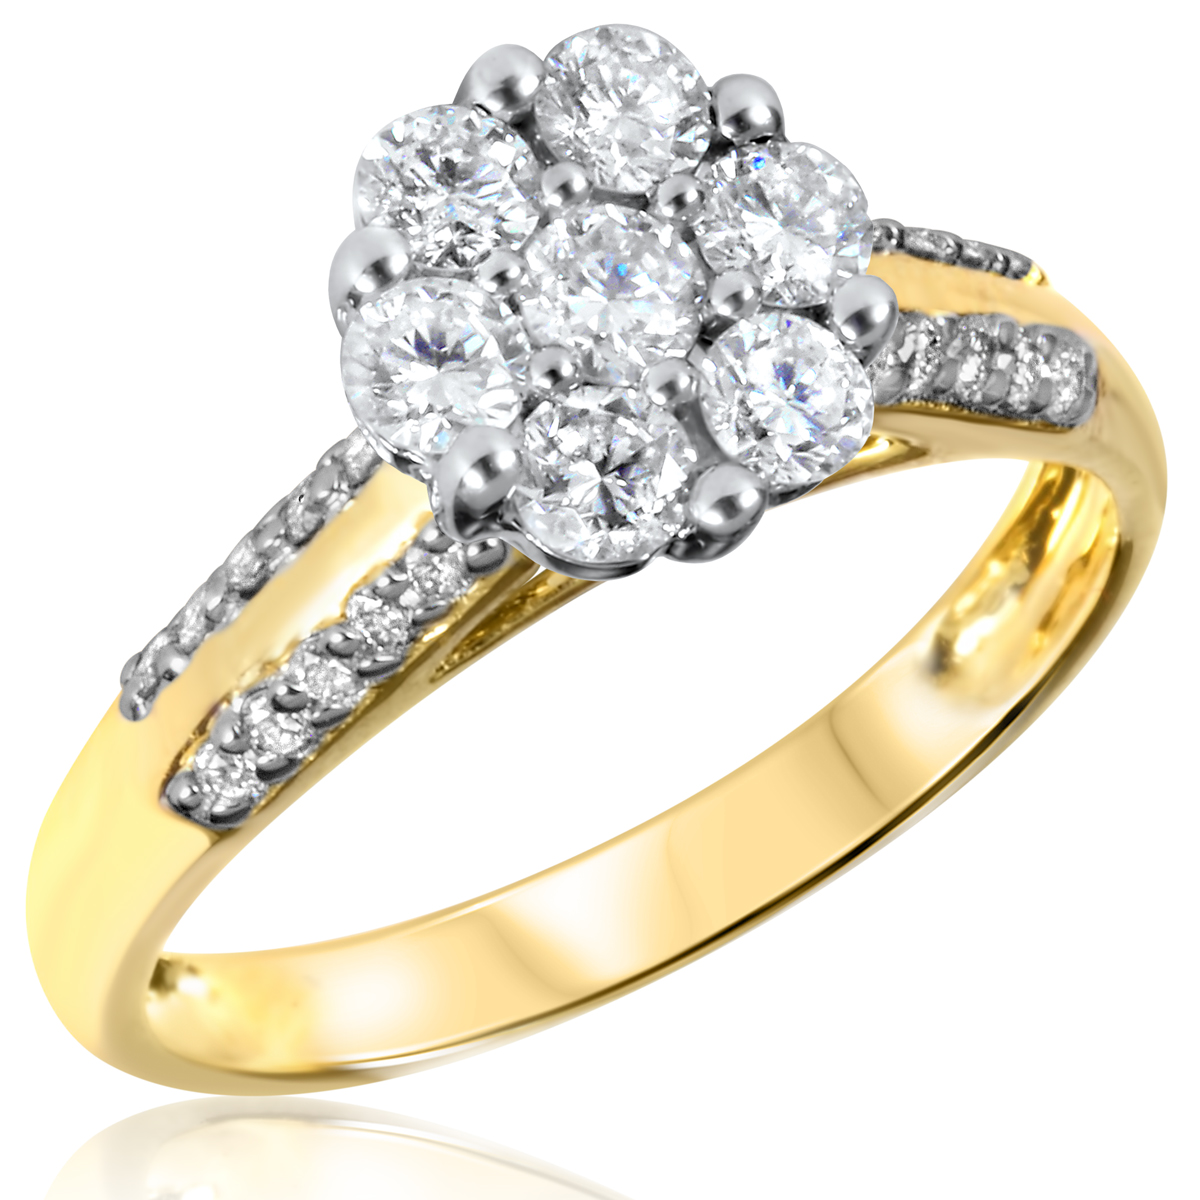 wedding ring sets at jcpenney jcpenney wedding ring sets Image of Wedding Ring Sets Blue Nile